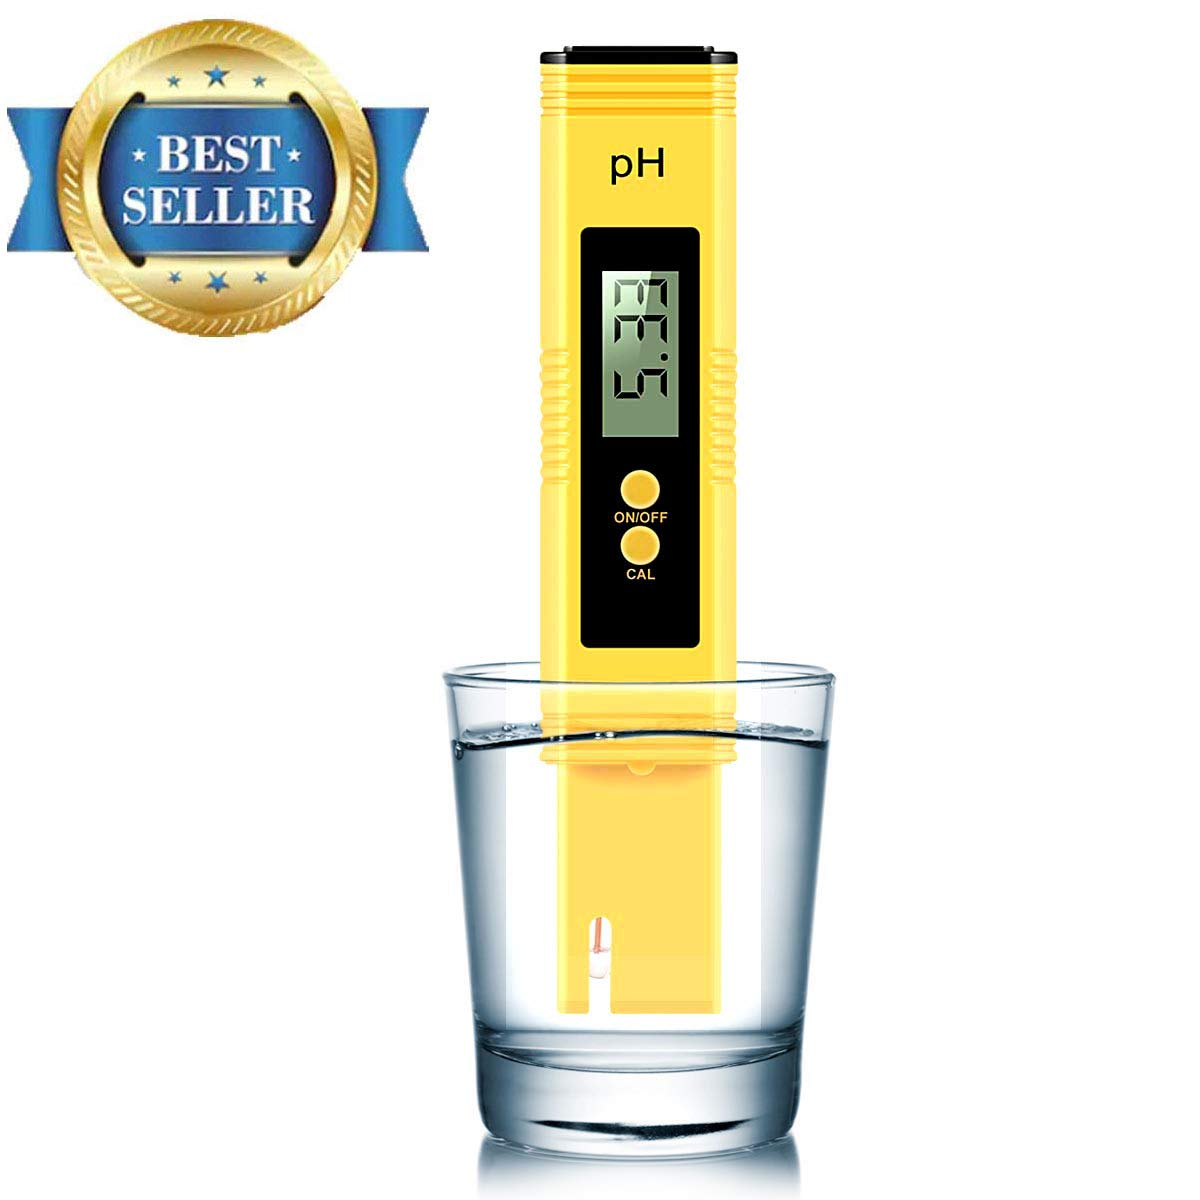 Vminno Digital PH Meter, PH Meter 0.01 PH High Accuracy Water Quality Tester with 0-14 PH Measurement Range for Household Drinking, Pool and Aquarium Water PH Tester Design with ATC … (2019)